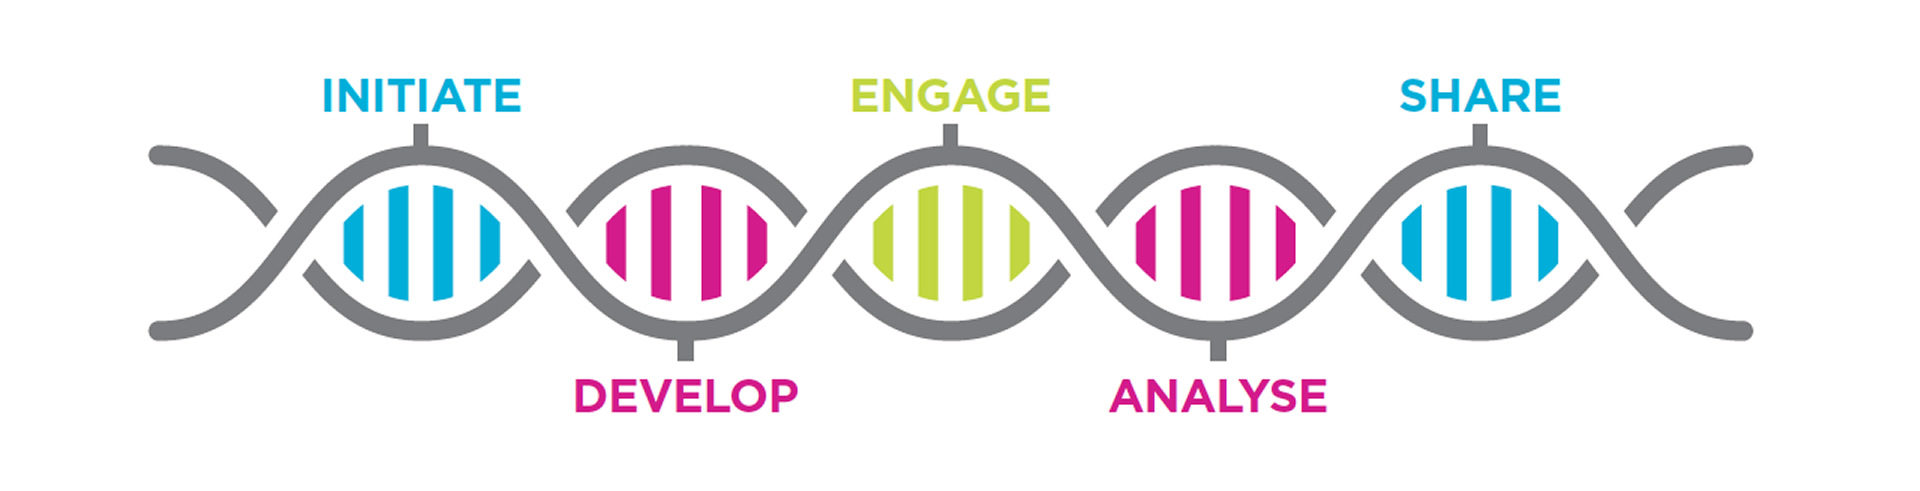 Initiate Develop Engage Analyse Share